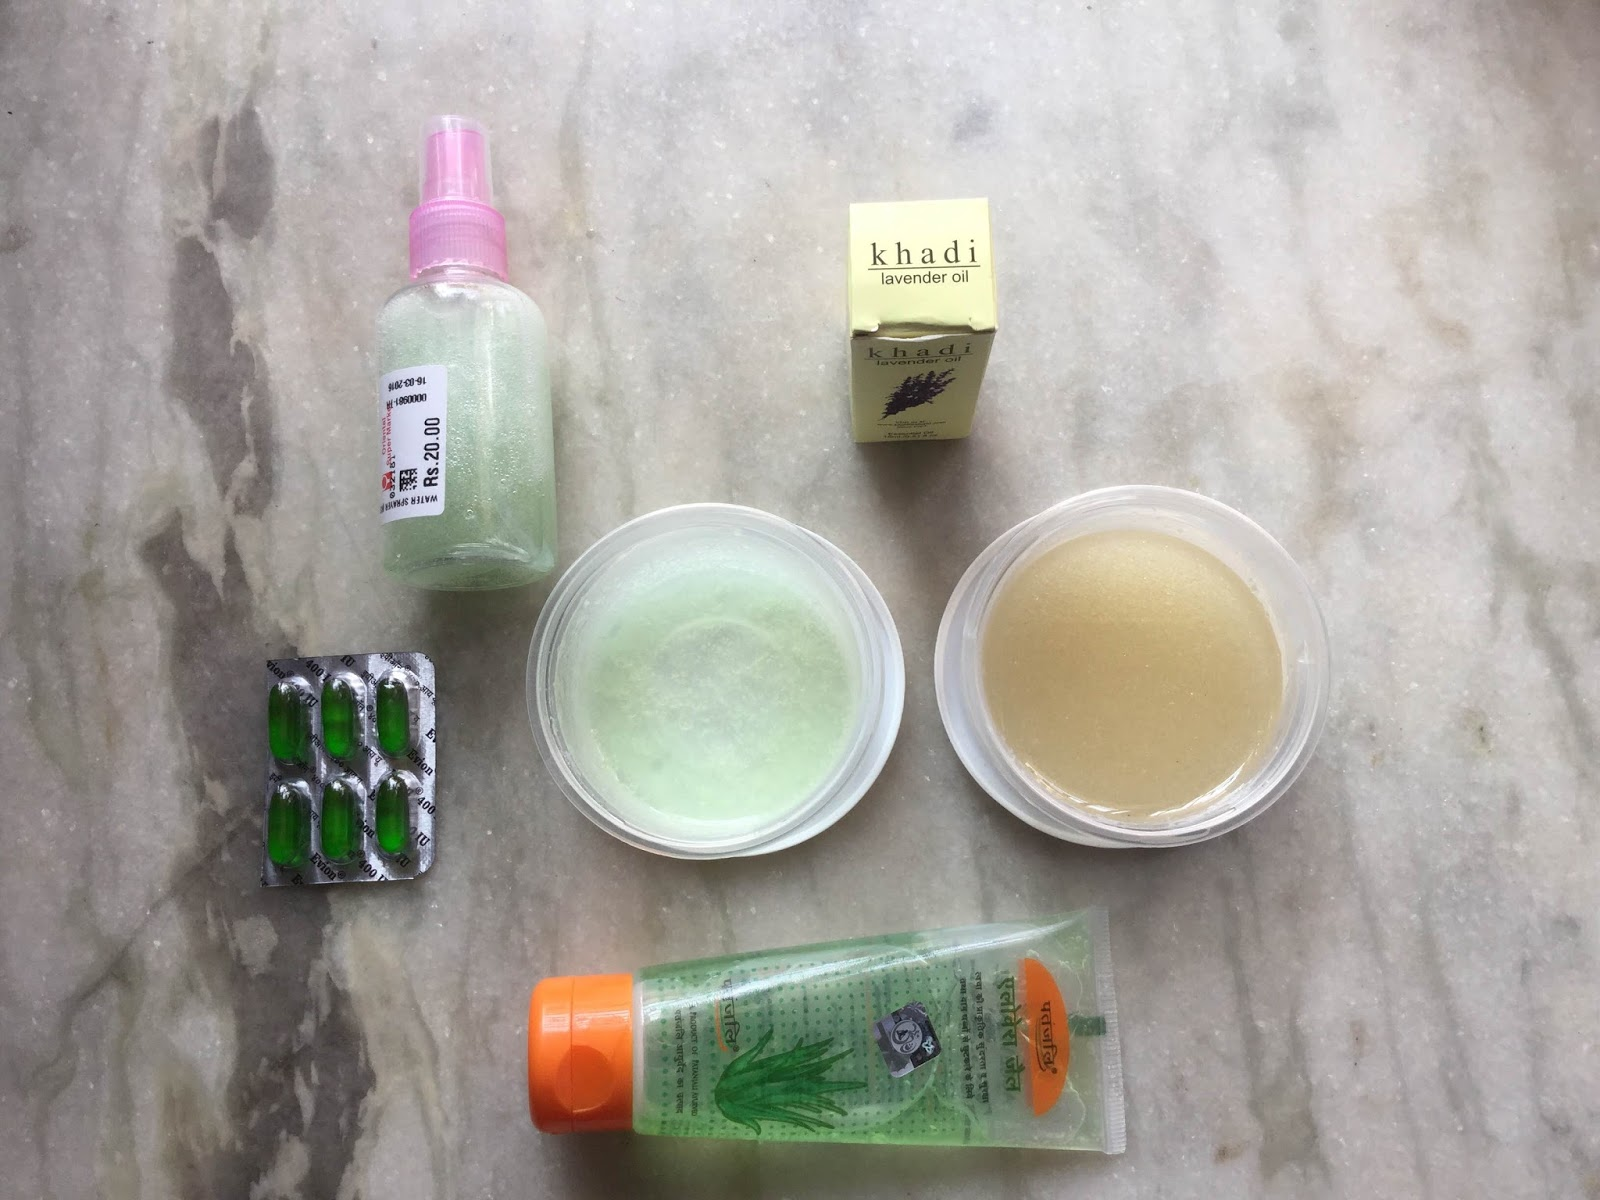 Do it yourself diy for next gen diy facial scrubber and anti the anti tan face mask which you can use once in a week to make sure your tan is at way lets start our diy facial scrubber solutioingenieria Image collections